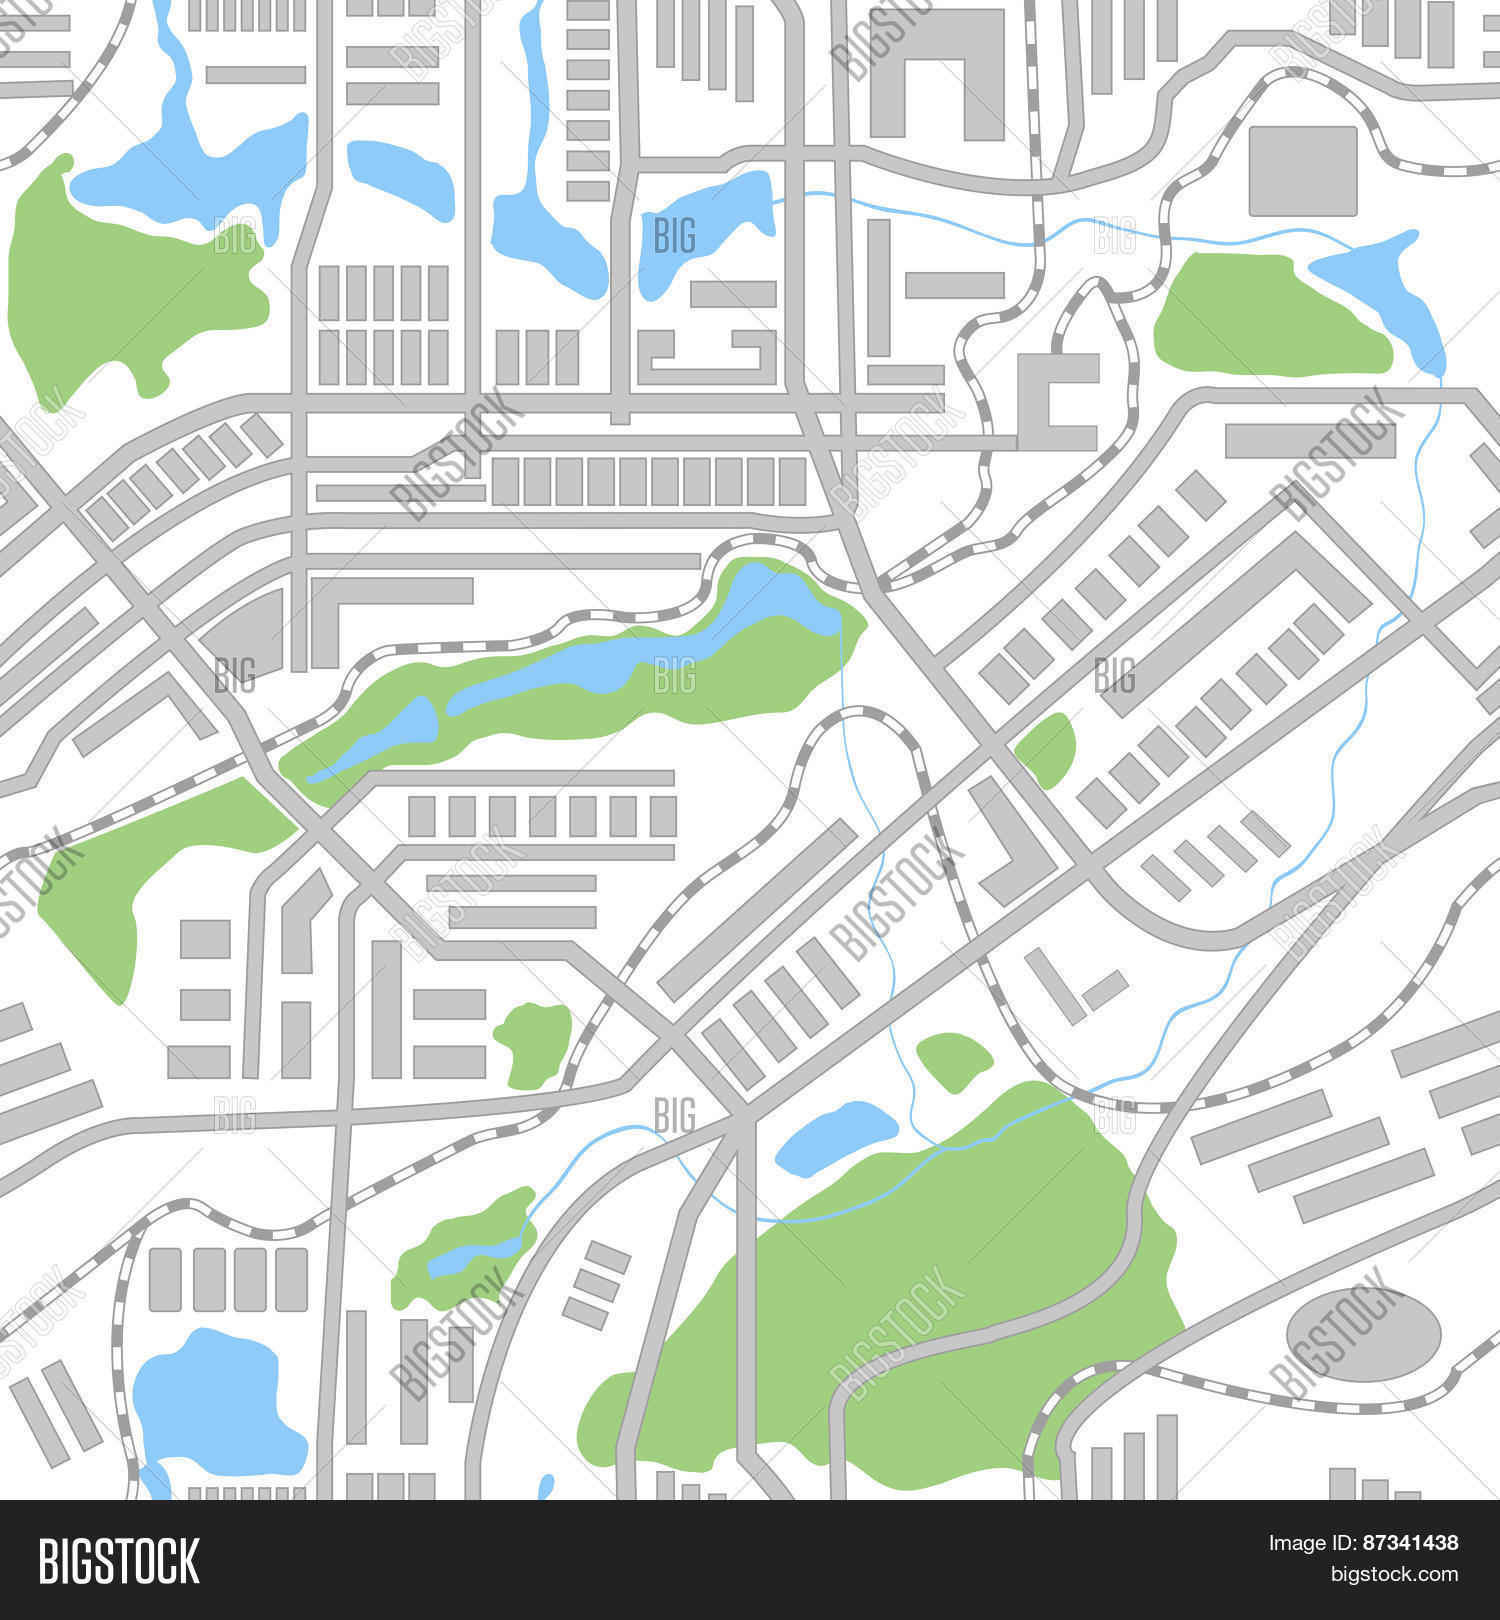 Map Generator – Daily Inspiration Quotes on